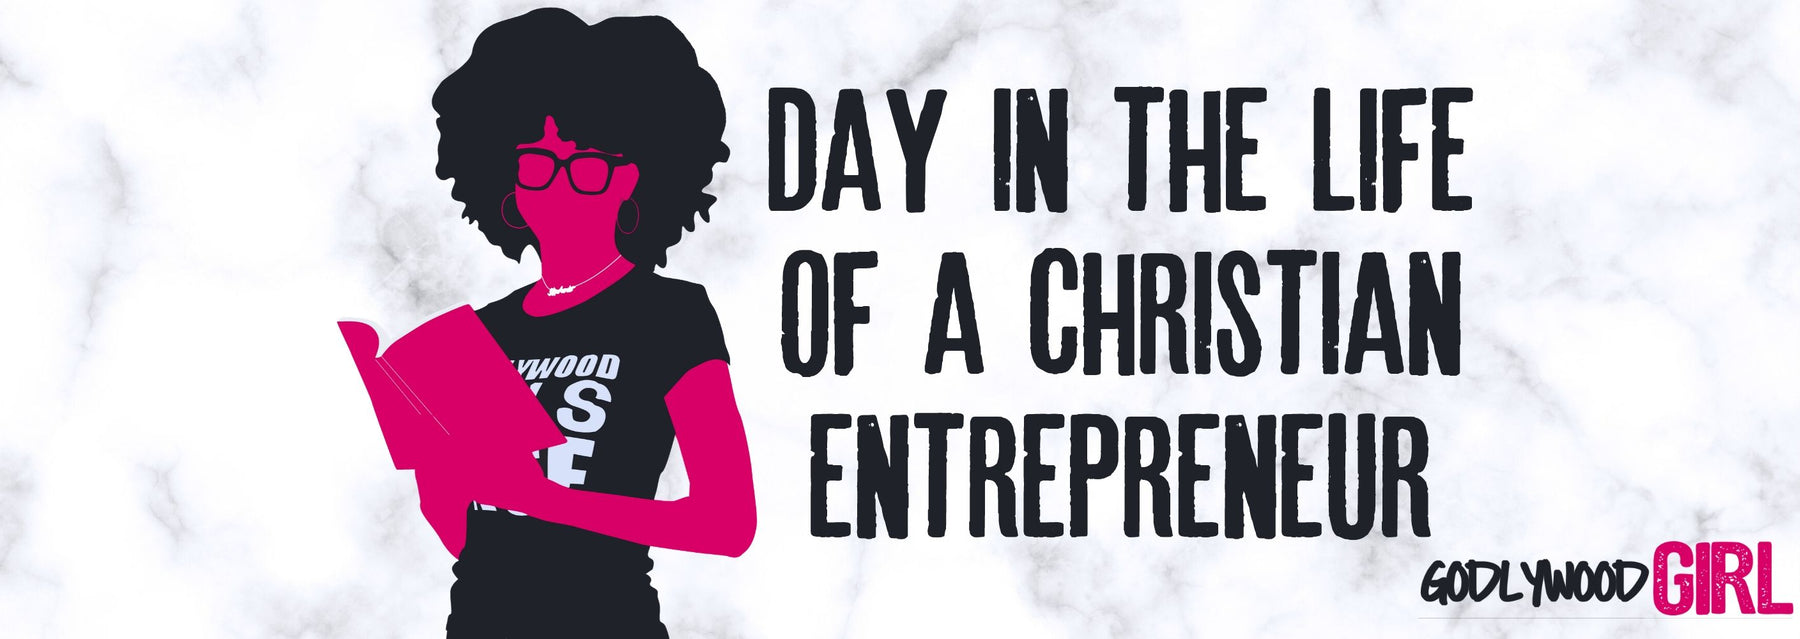 Day In The Life Of A Christian Entrepreneur Ep.84 | Social Distancing Day #5